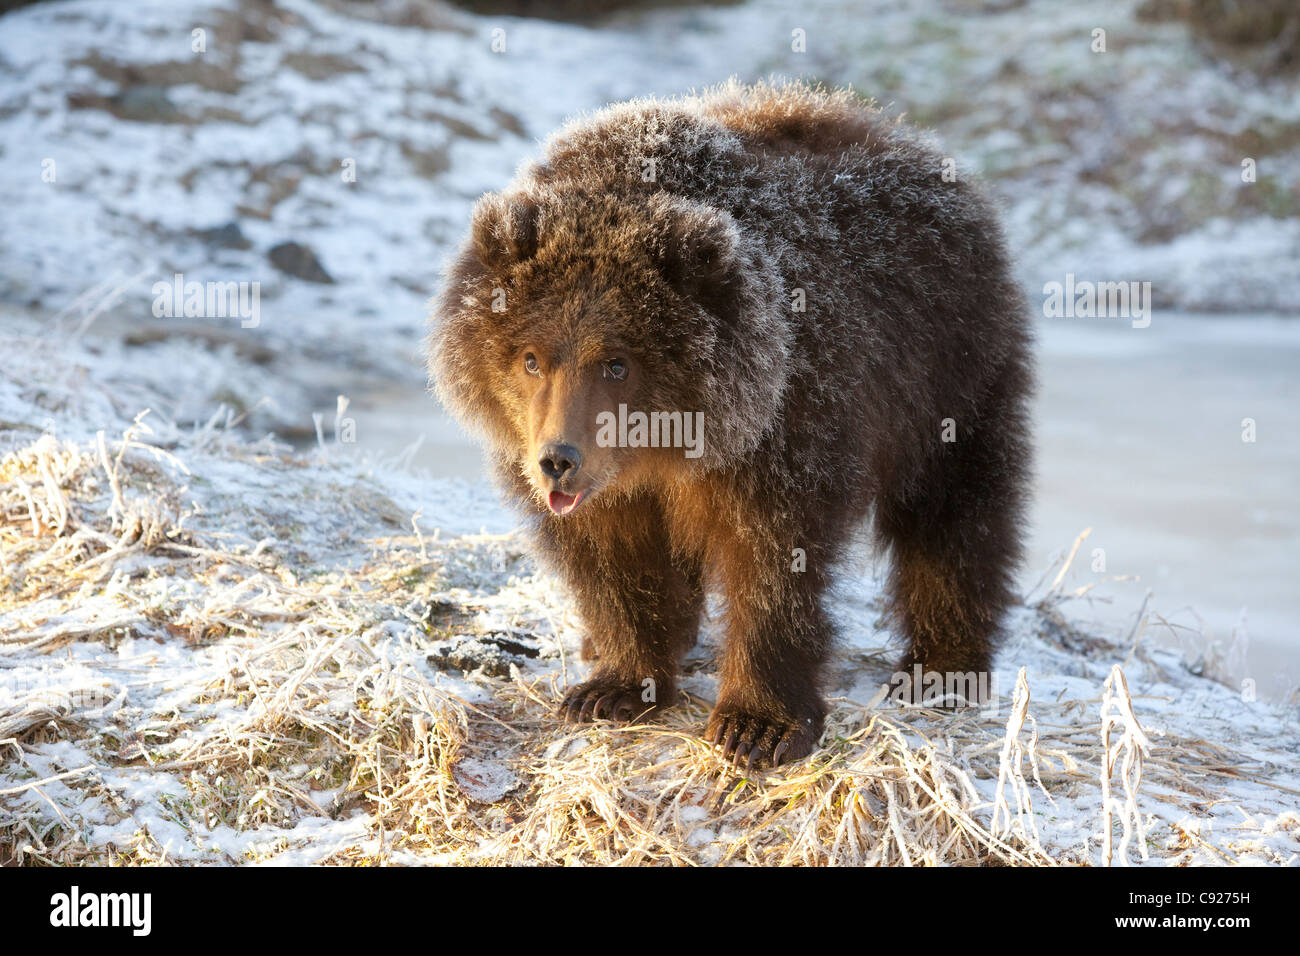 CAPTIVE: Kodiak Brown bear cub with frost covered fur standing on snowcovered ground,Alaska Wildlife Conservation - Stock Image